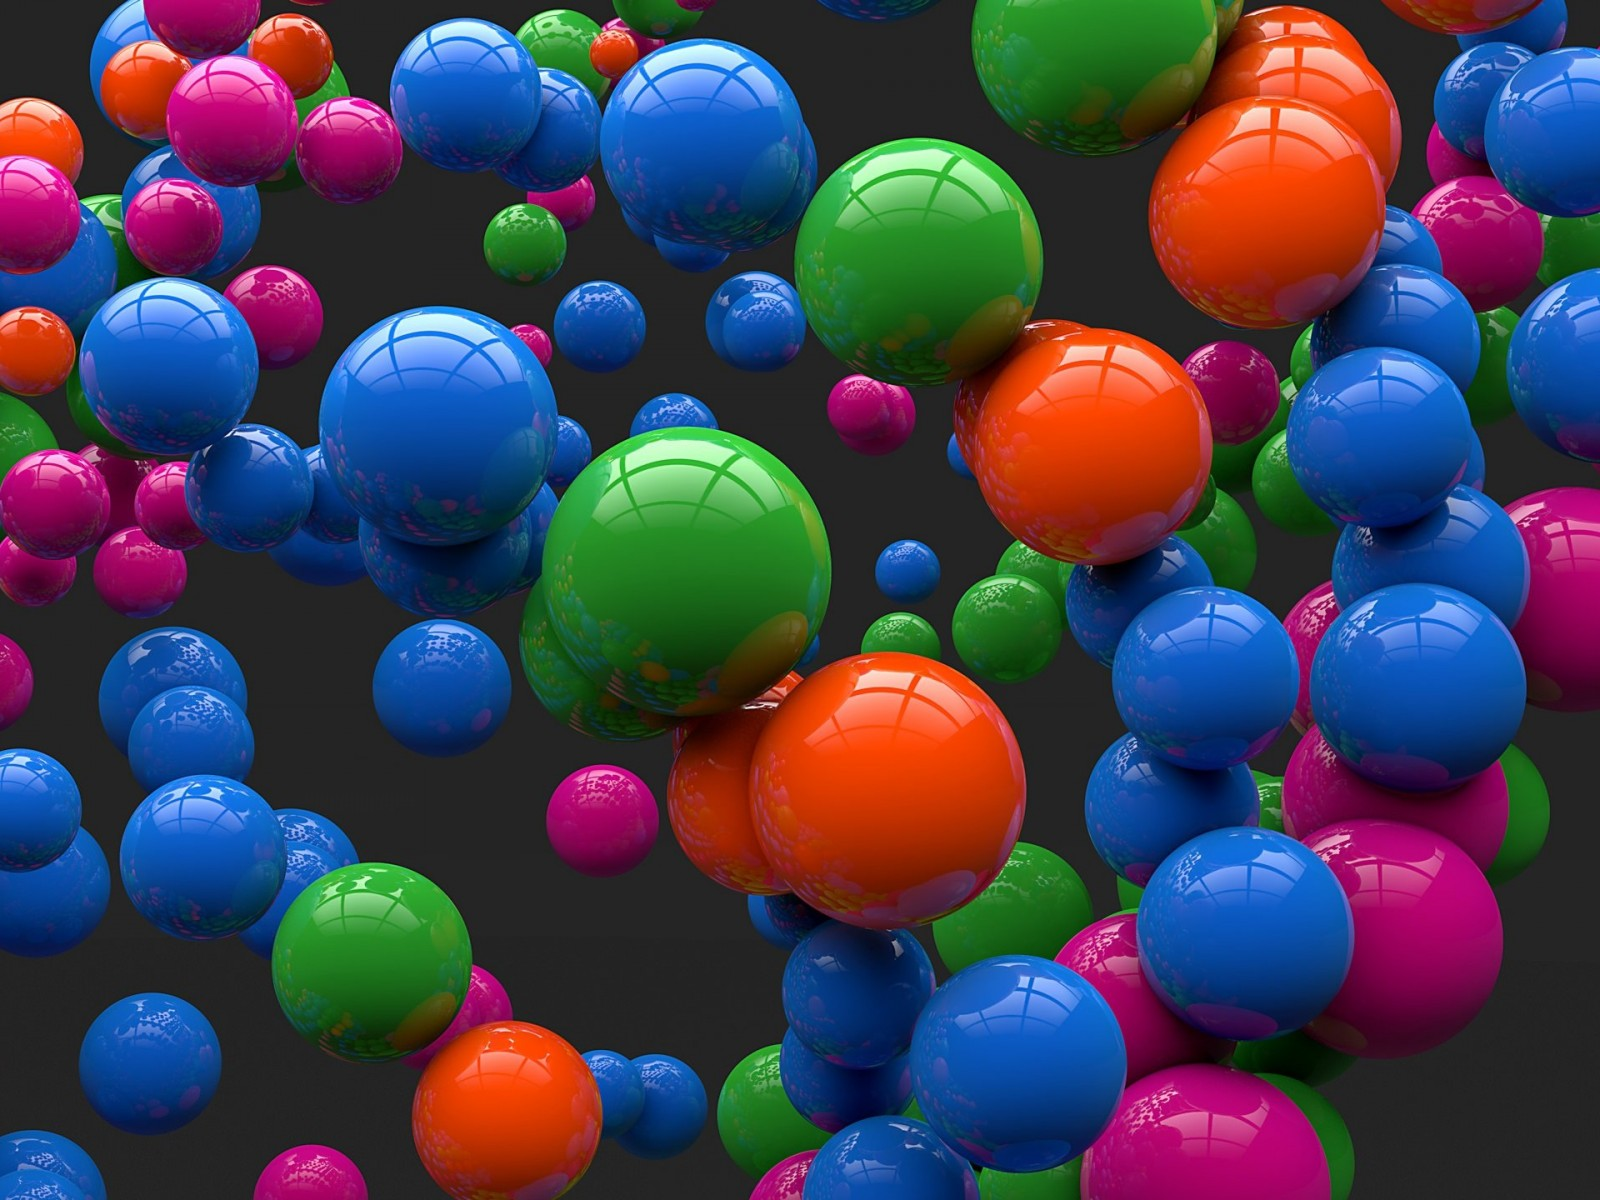 Colorful Balls Wallpaper for Desktop 1600x1200